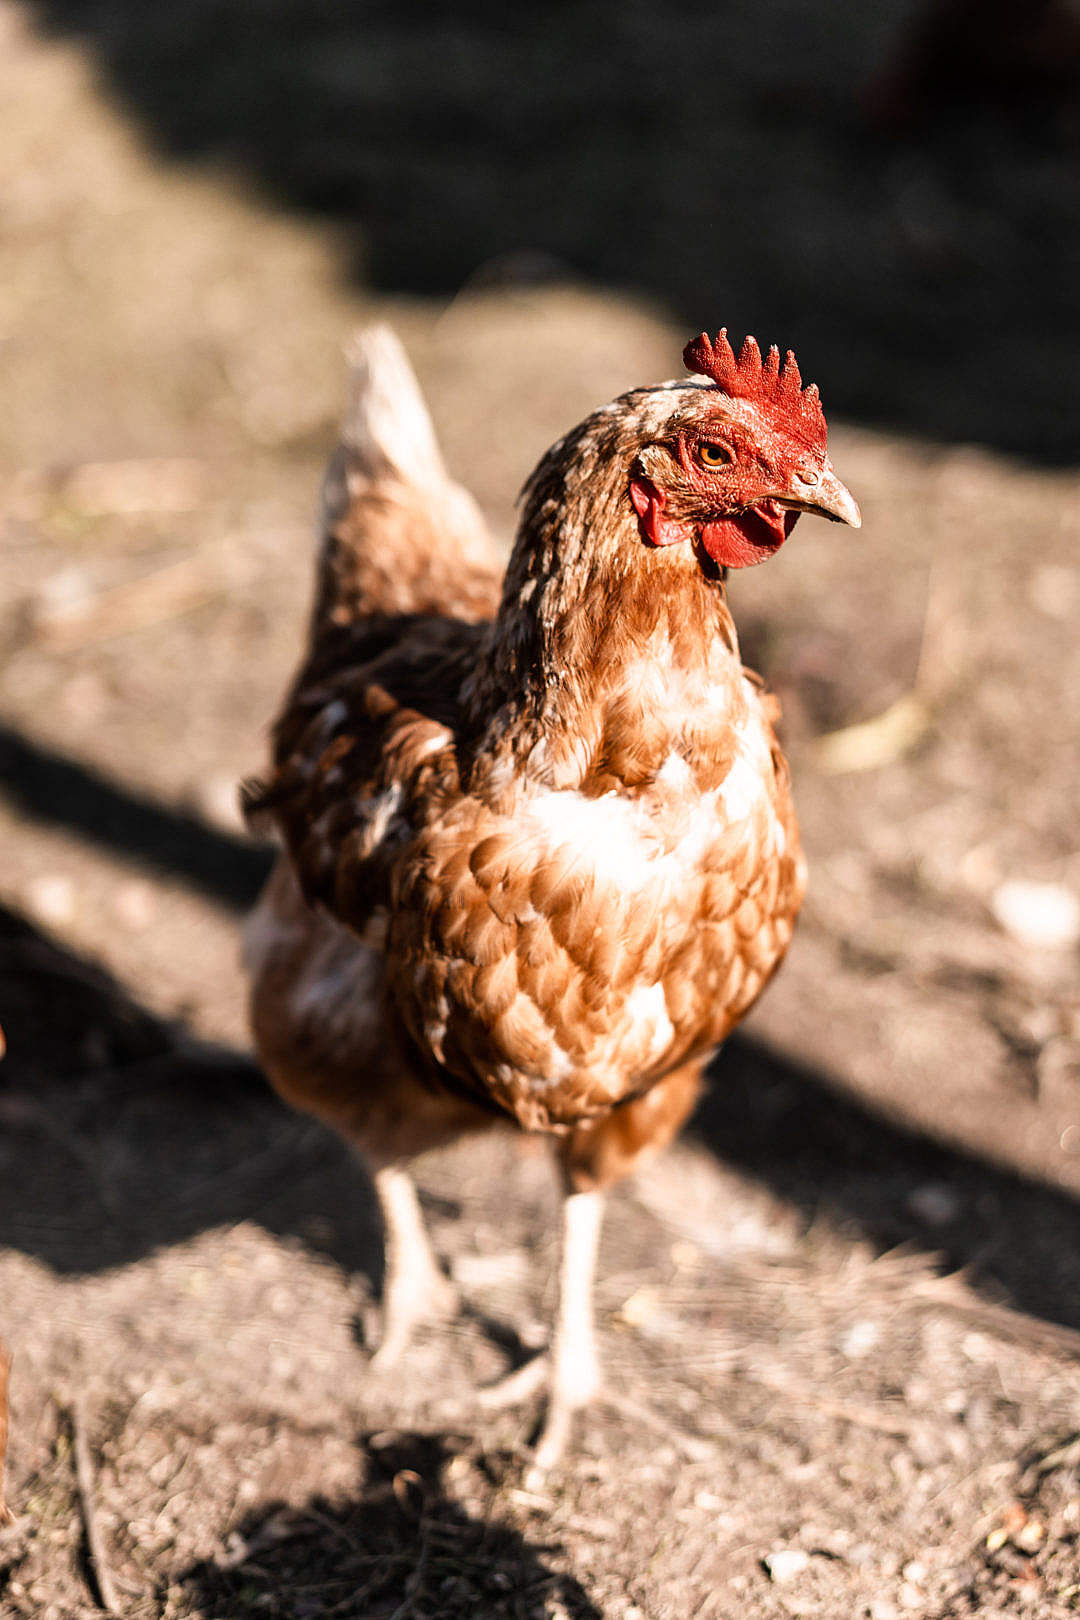 Download Hen Walking in Enclosure FREE Stock Photo